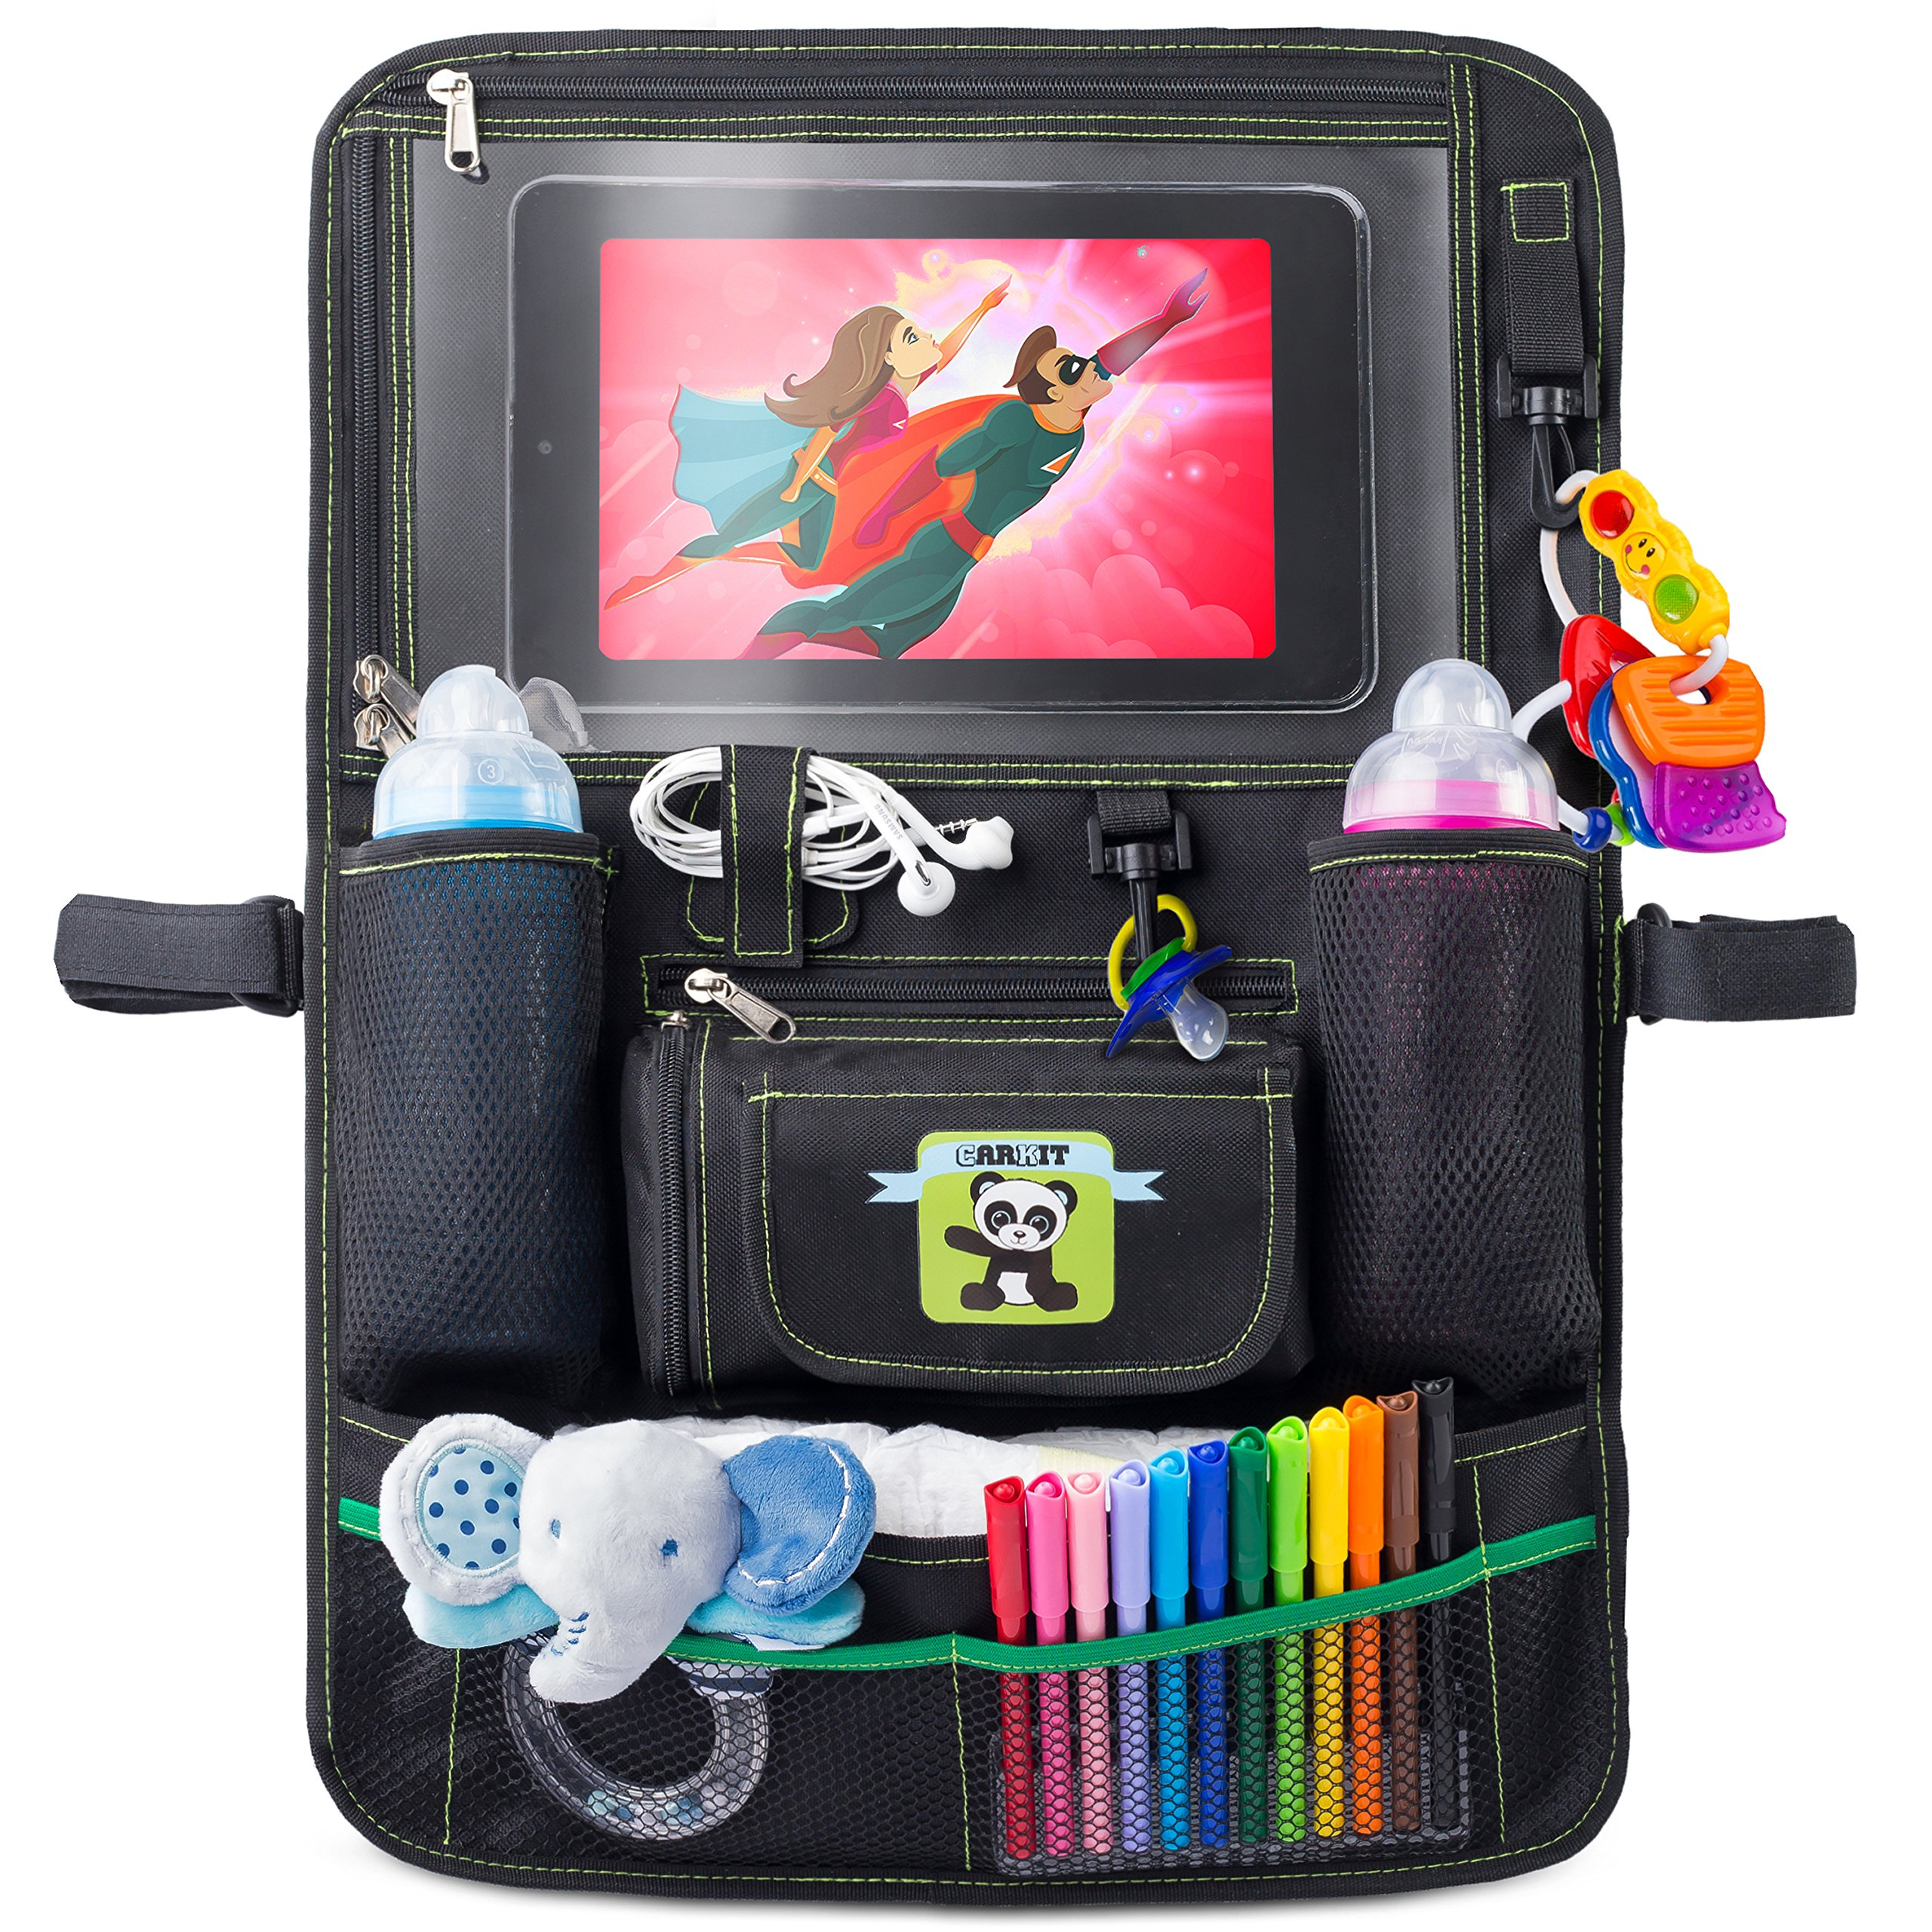 Cartik Backseat Car Organizer For Kids, Babies And Toddlers, With Tablet Holder By iPad Touch Screen, Fit To Baby Stroller, Large Storage, Kick Mat, Back Seat Protector, Organizer eBook